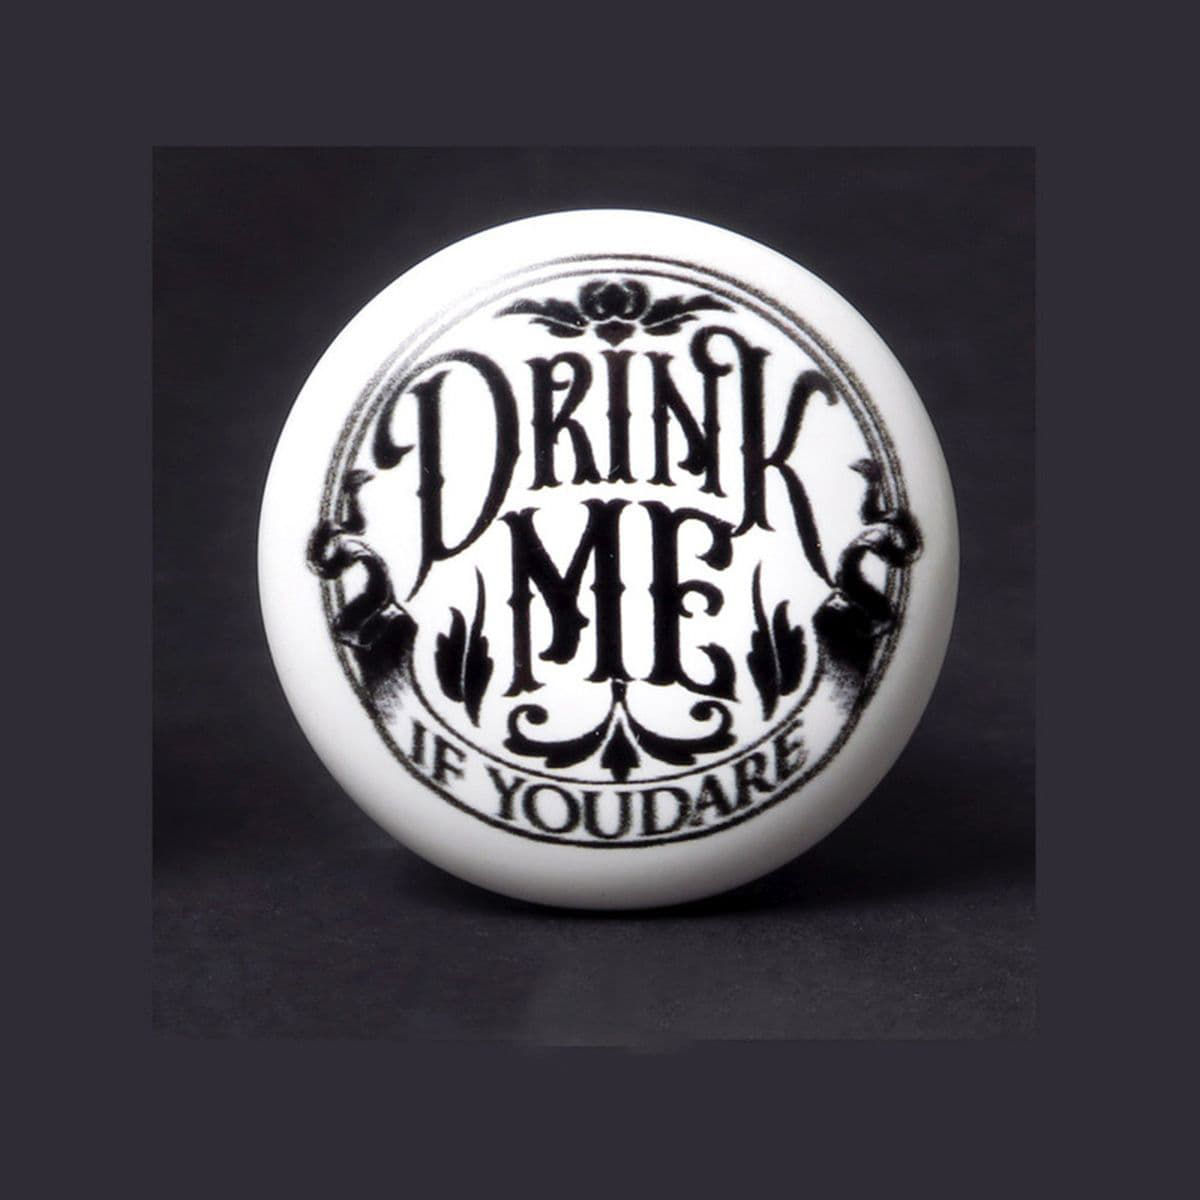 Drink Me If You Dare cork stopper with ceramic top inviting you to partake, if you dare